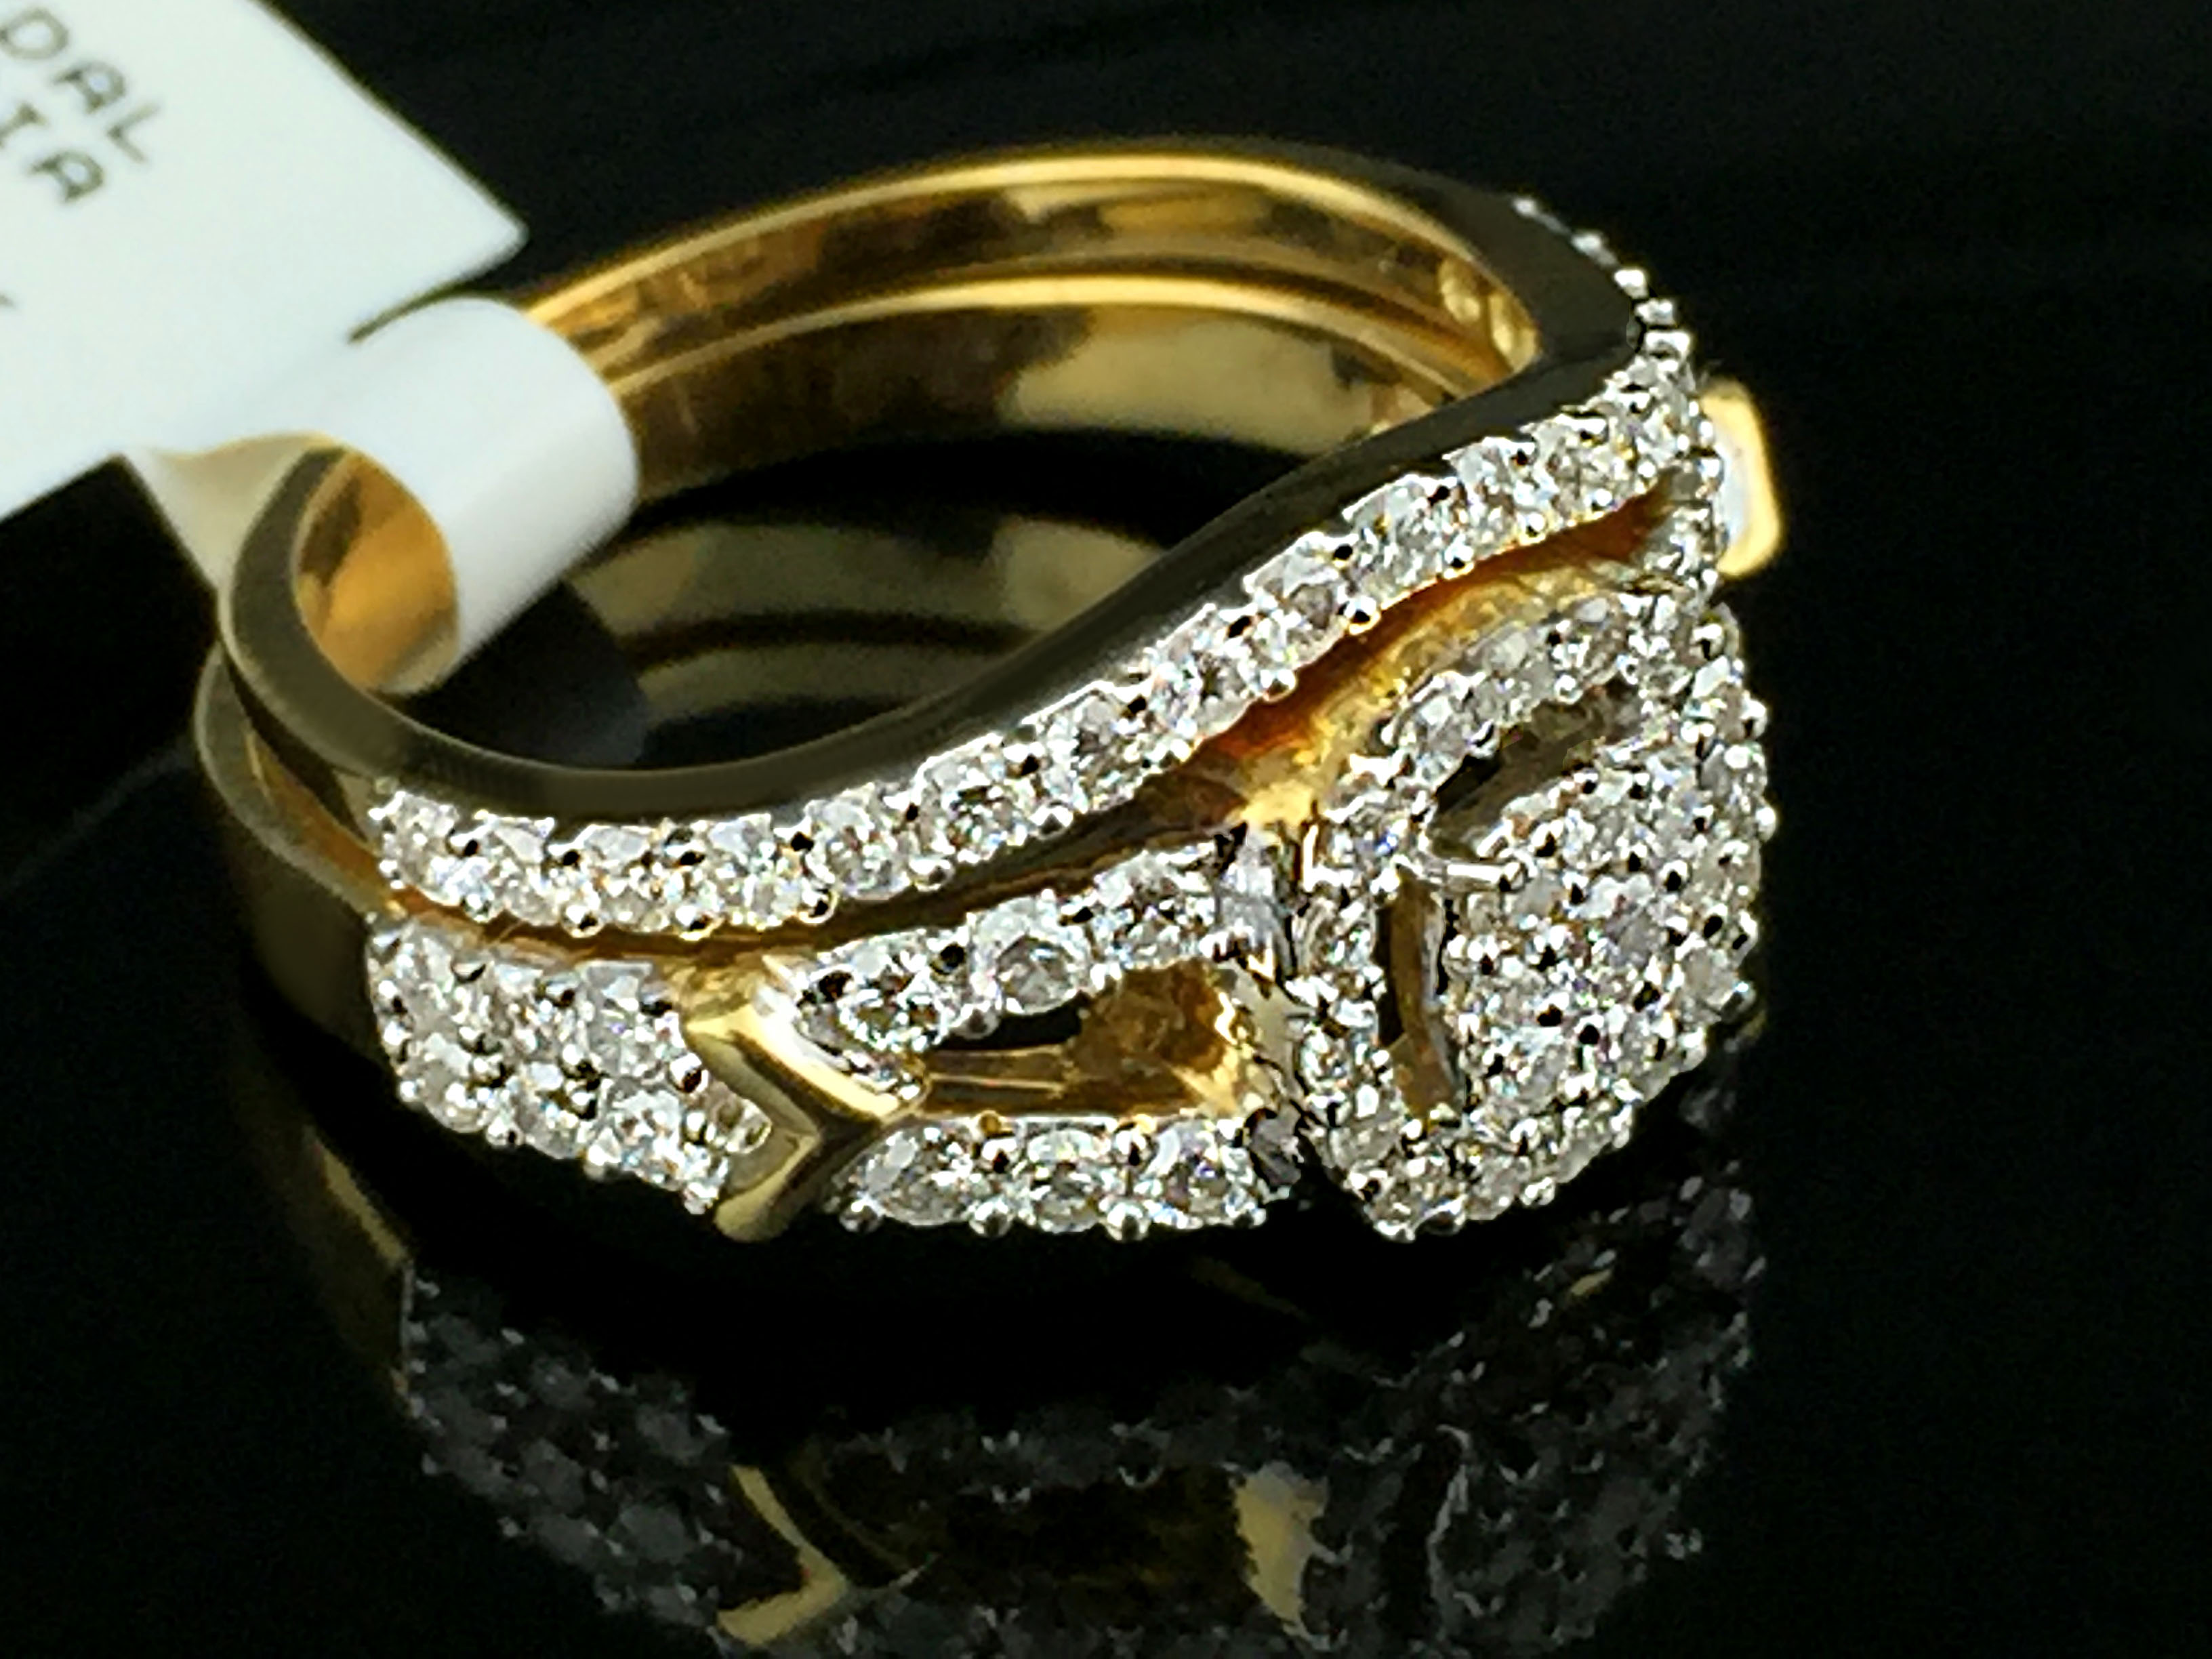 halo bridal bands rings engagement related band post unique of uplifting gold fresh wrap around white set wedding diamond custom ring